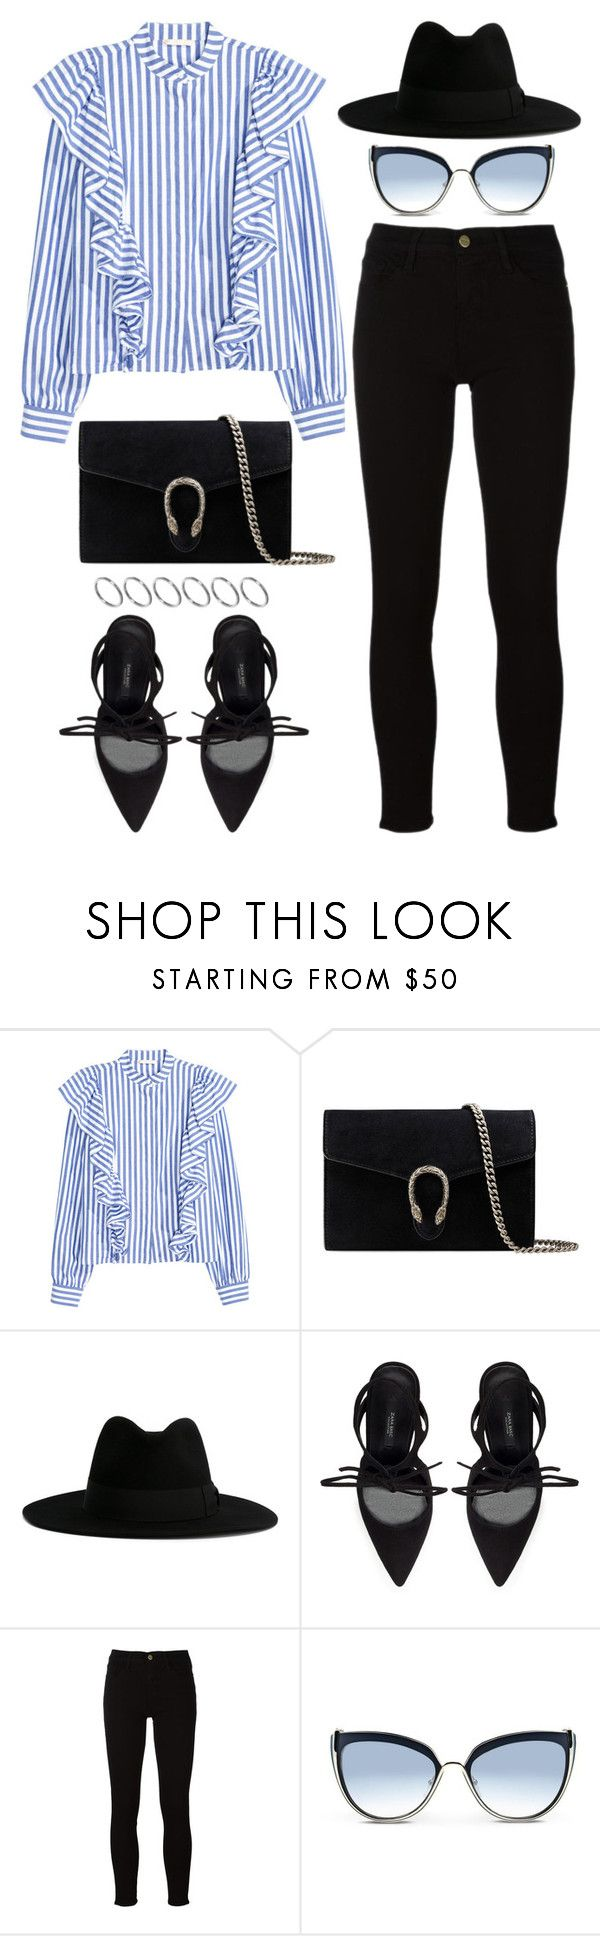 """924"" by dasha-volodina ❤ liked on Polyvore featuring Gucci, Yves Saint Laurent, Zara, Frame, Karl Lagerfeld and ASOS"